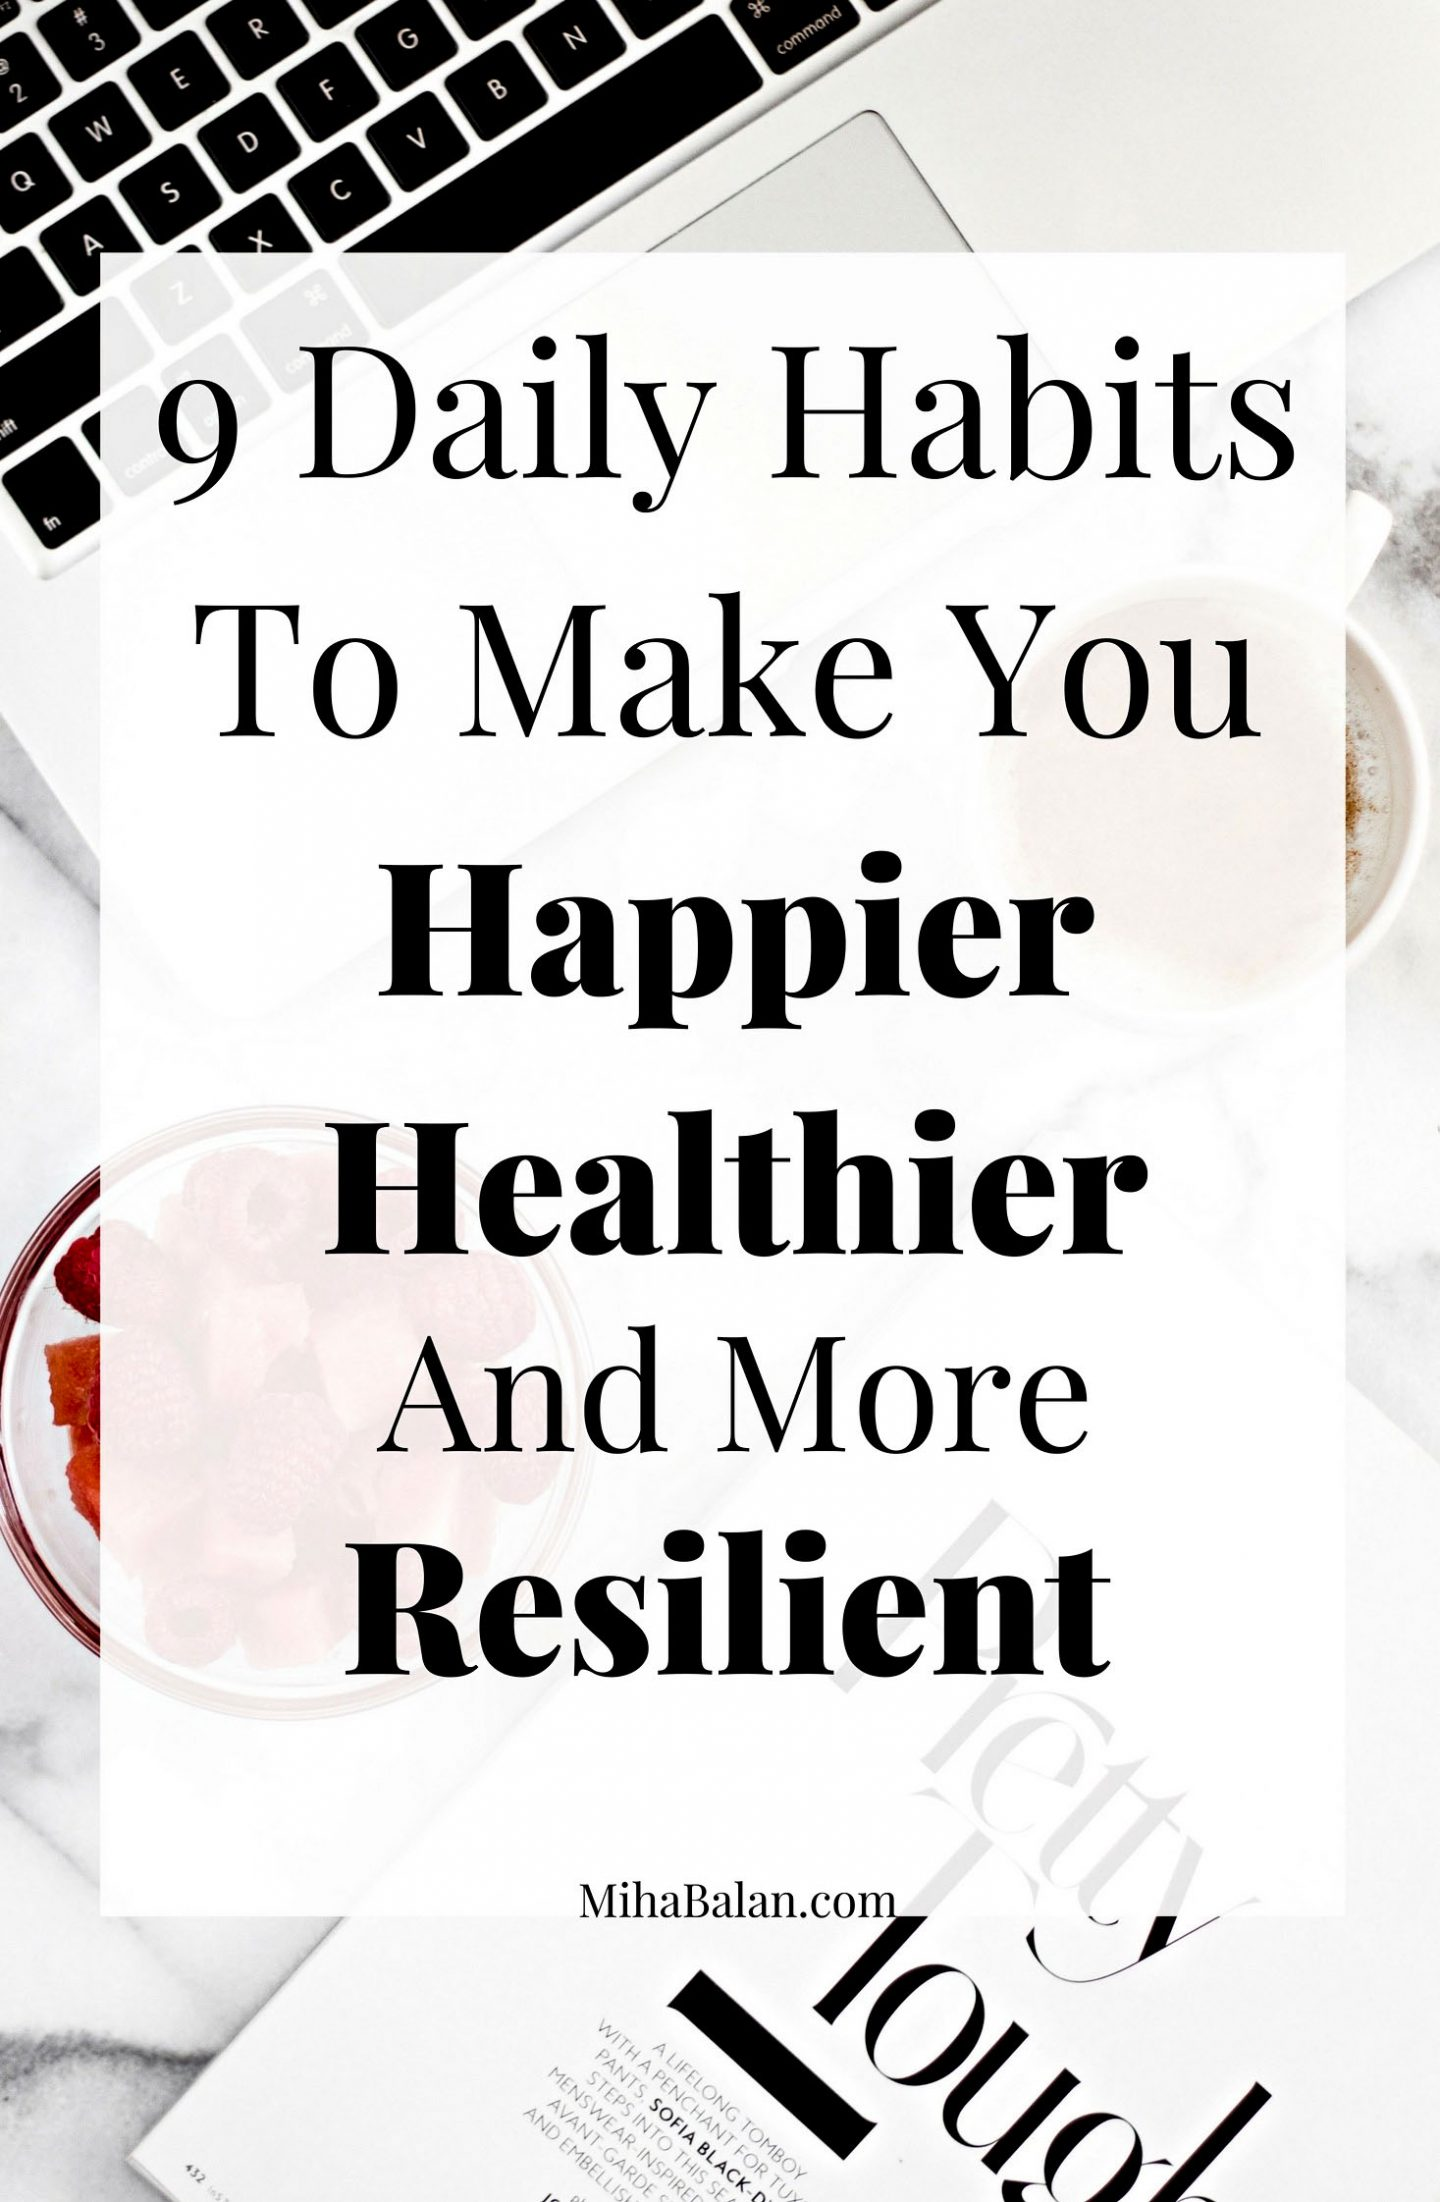 9 Daily HabitsTo Make YouHappierHealthier And More Resilient